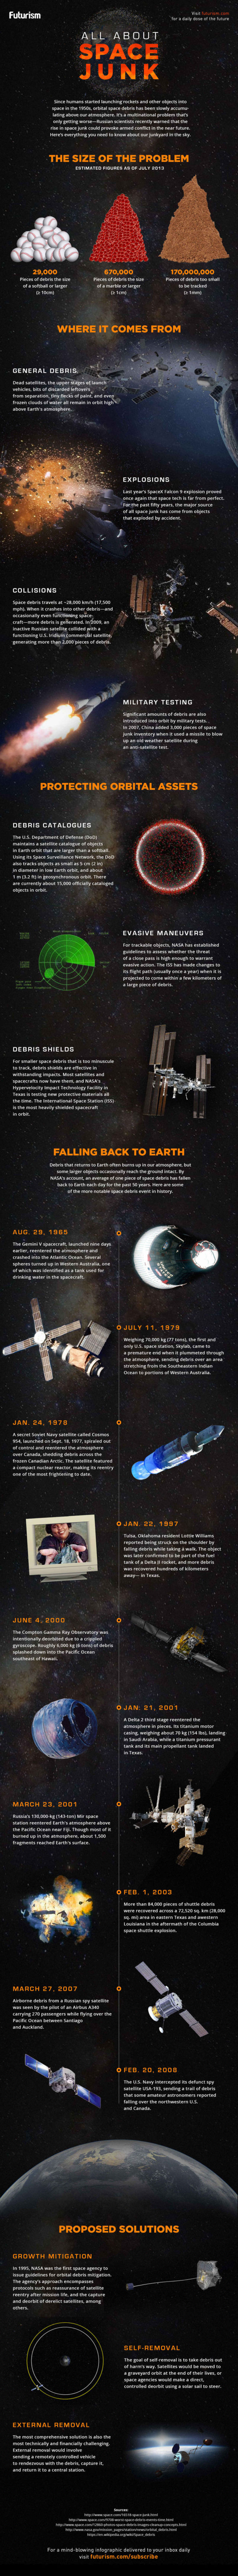 All about Space Junk - infographic